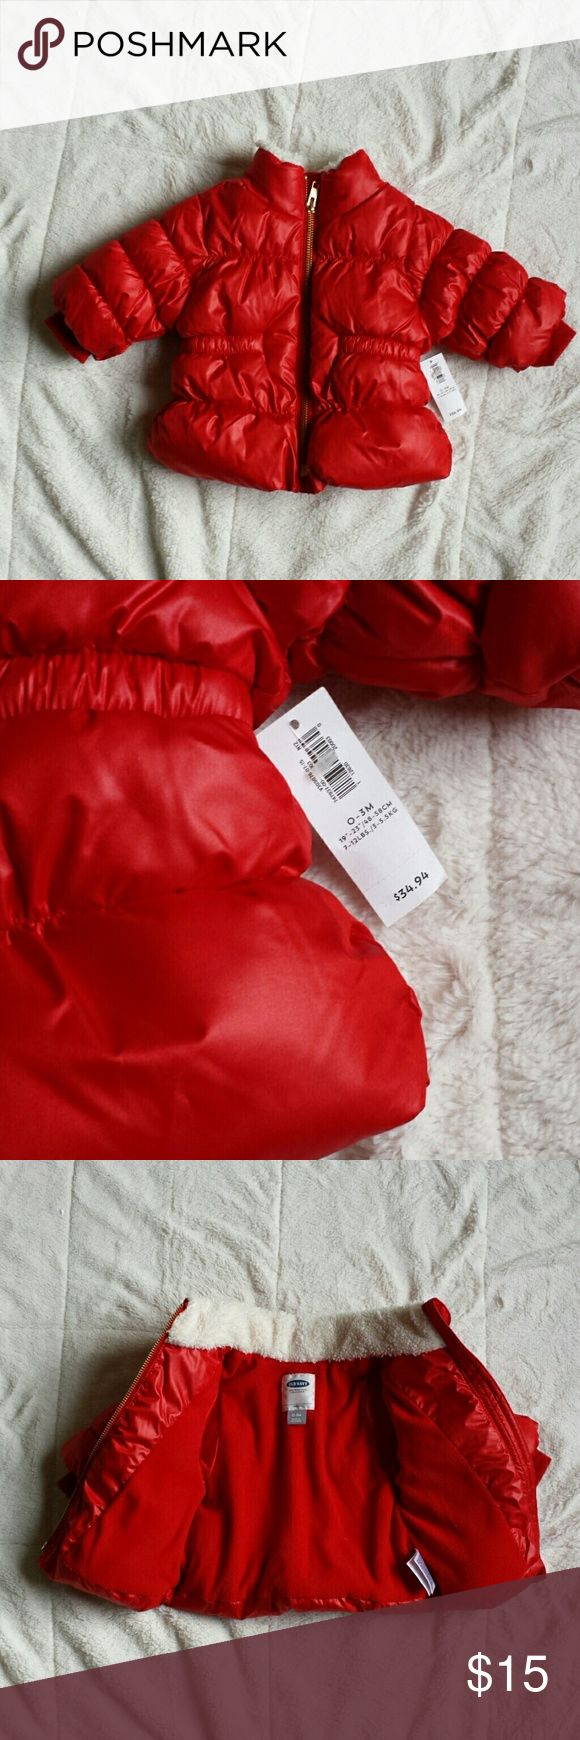 New! Old Navy baby puffer New! Old Navy baby puffer Size 0-3m Old Navy Jackets & Coats Puffers